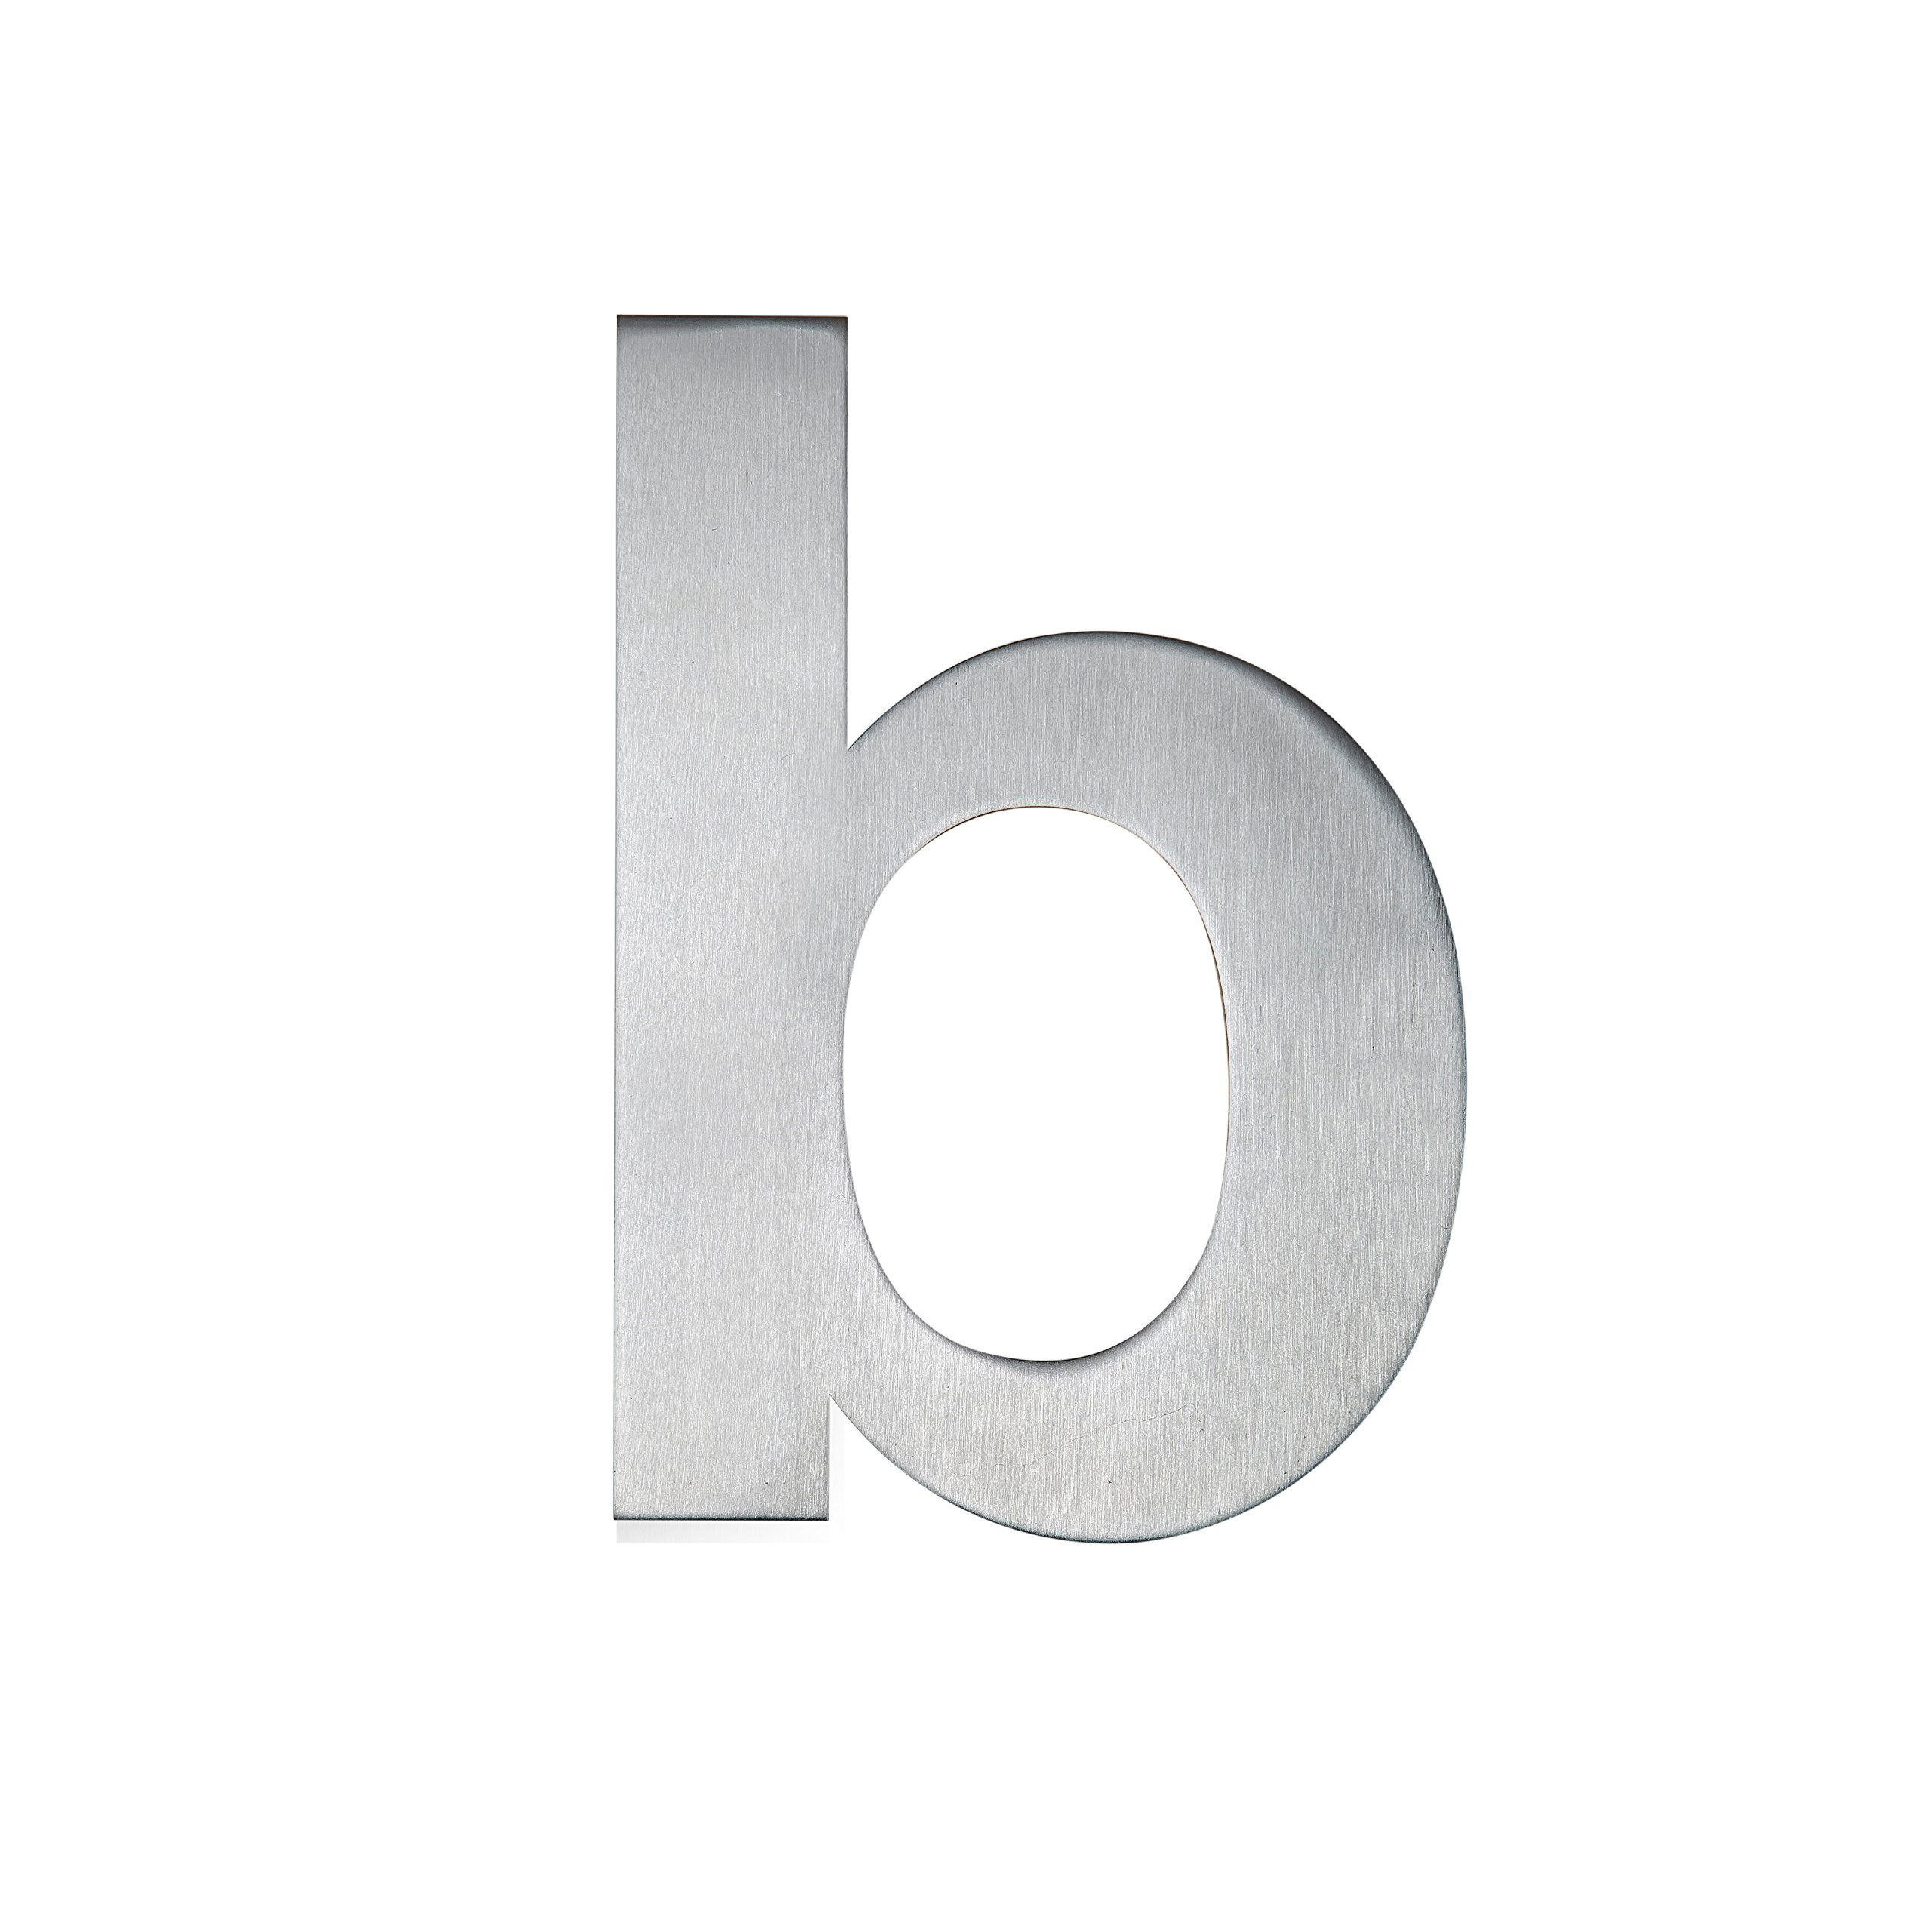 QT Modern House Number - SMALL 4 Inch - Brushed Stainless Steel (Letter b), Floating Appearance, Easy to install and made of solid 304